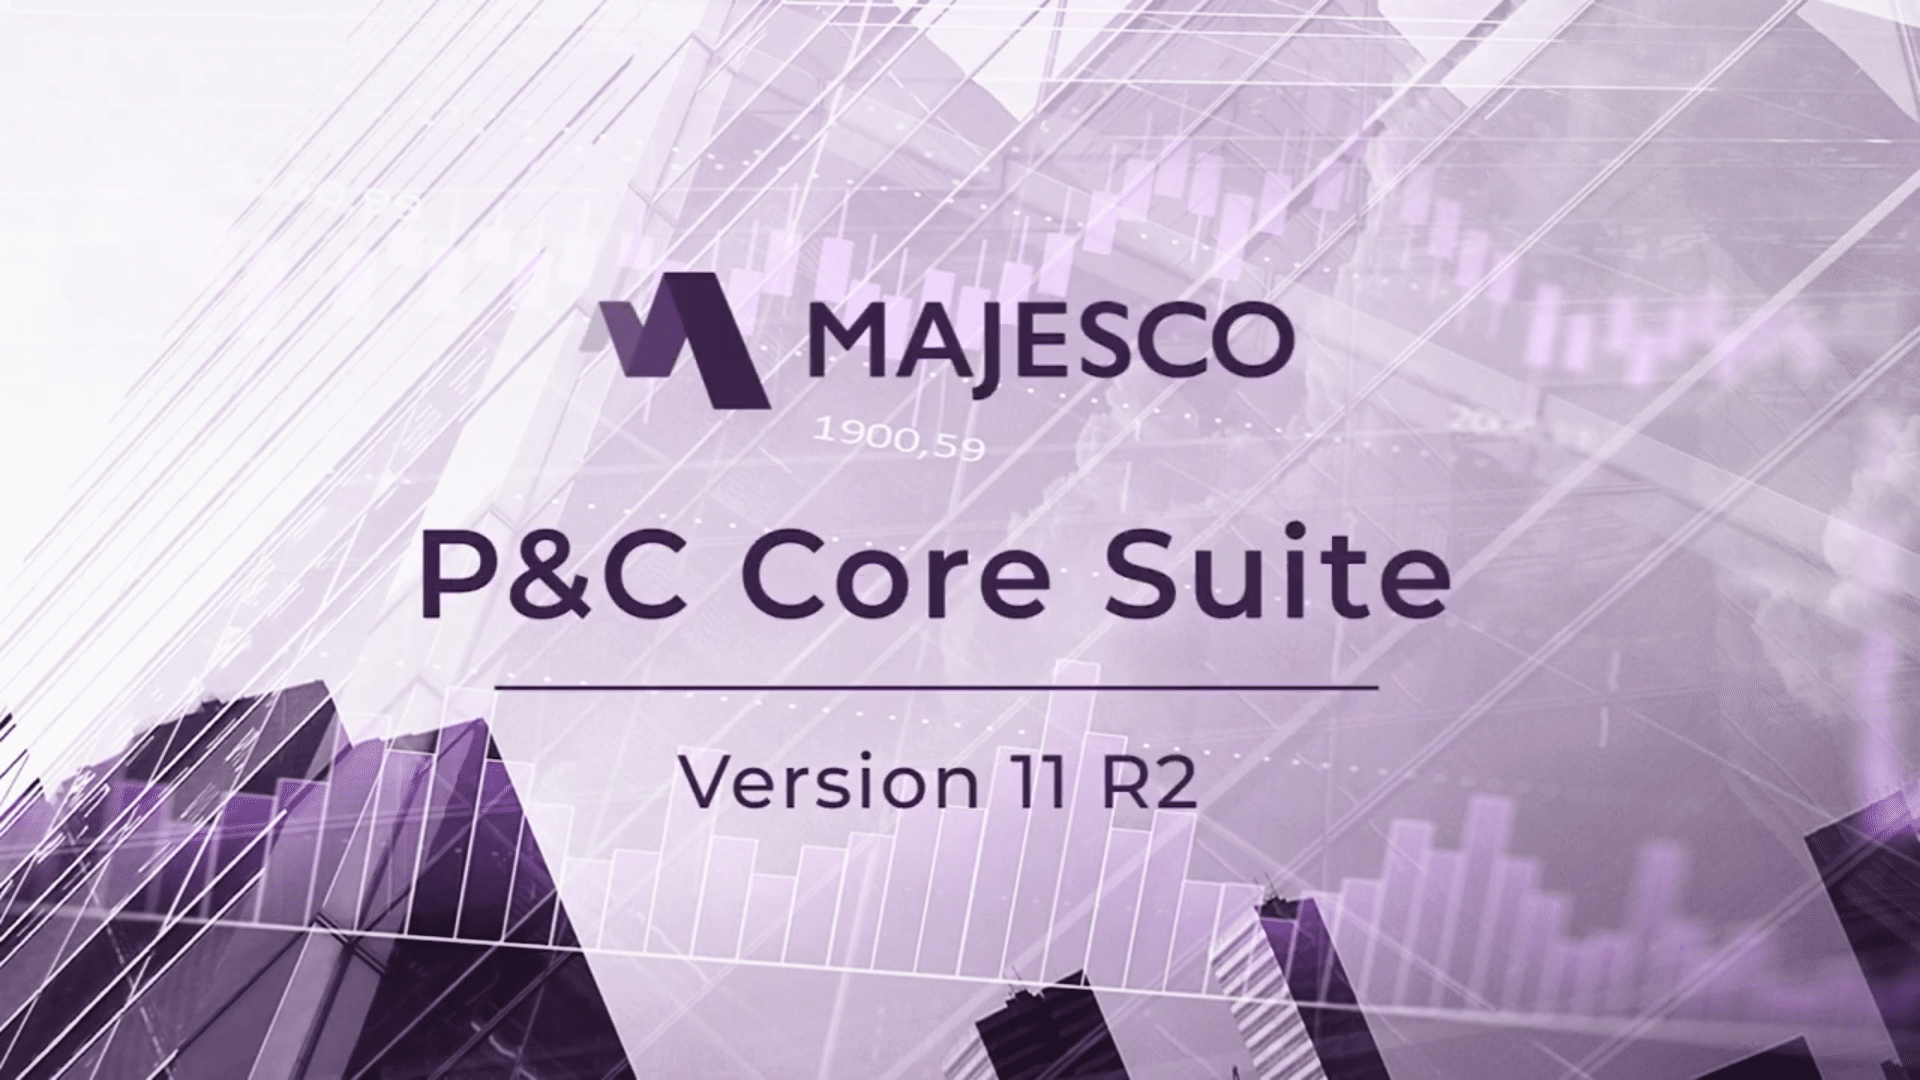 Majesco P&C Core Suite